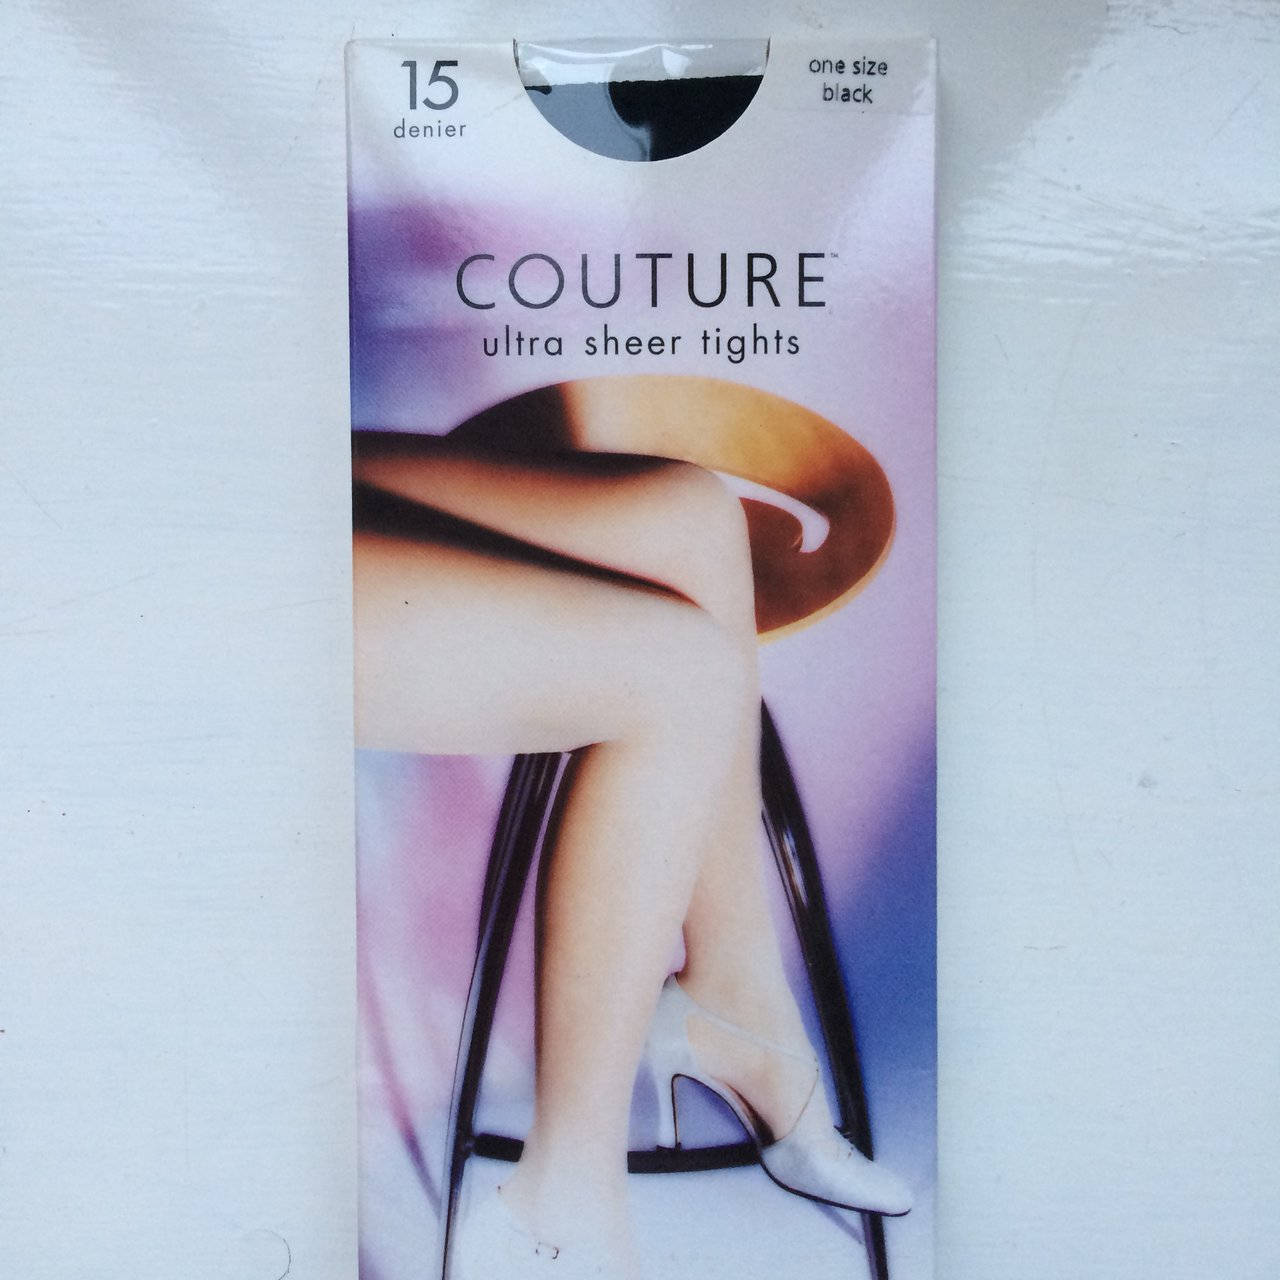 ecd8b9b72e9 Couture ultra sheer tights. Black 15 denier - Depop